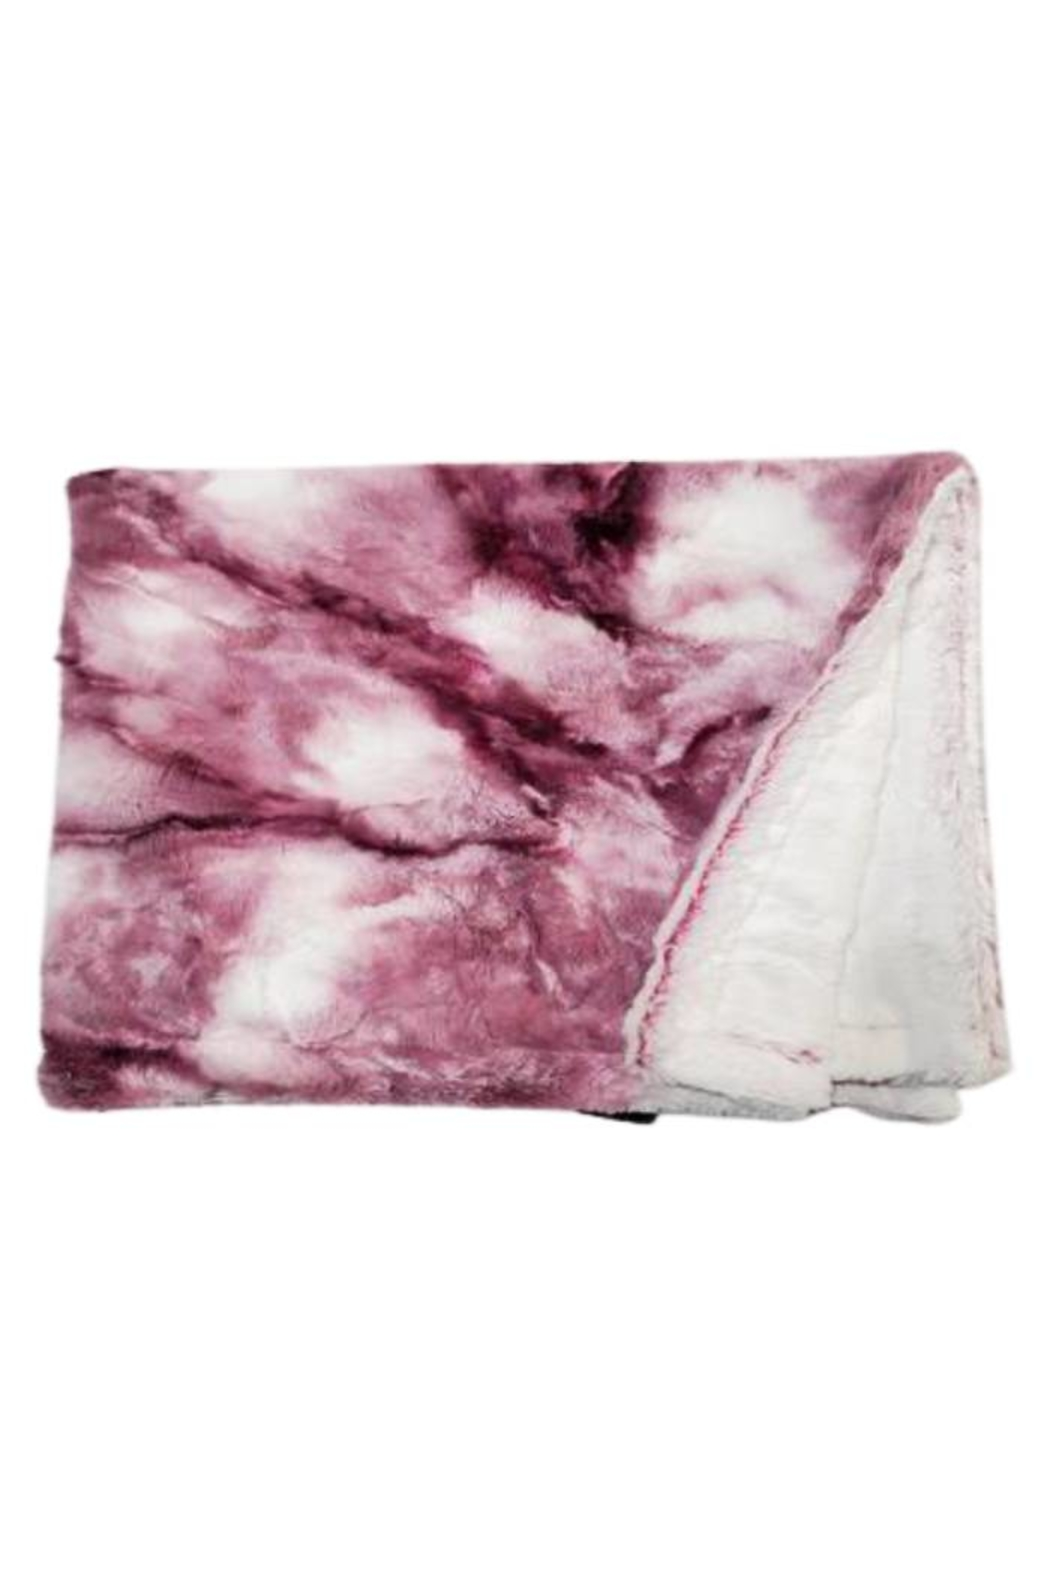 Winx+Blinx Sorbet Raspberry Minky Blankets (34 X 29 Inches)for Newborn Baby Boys Girls Winter Swaddle - Front Cropped Image